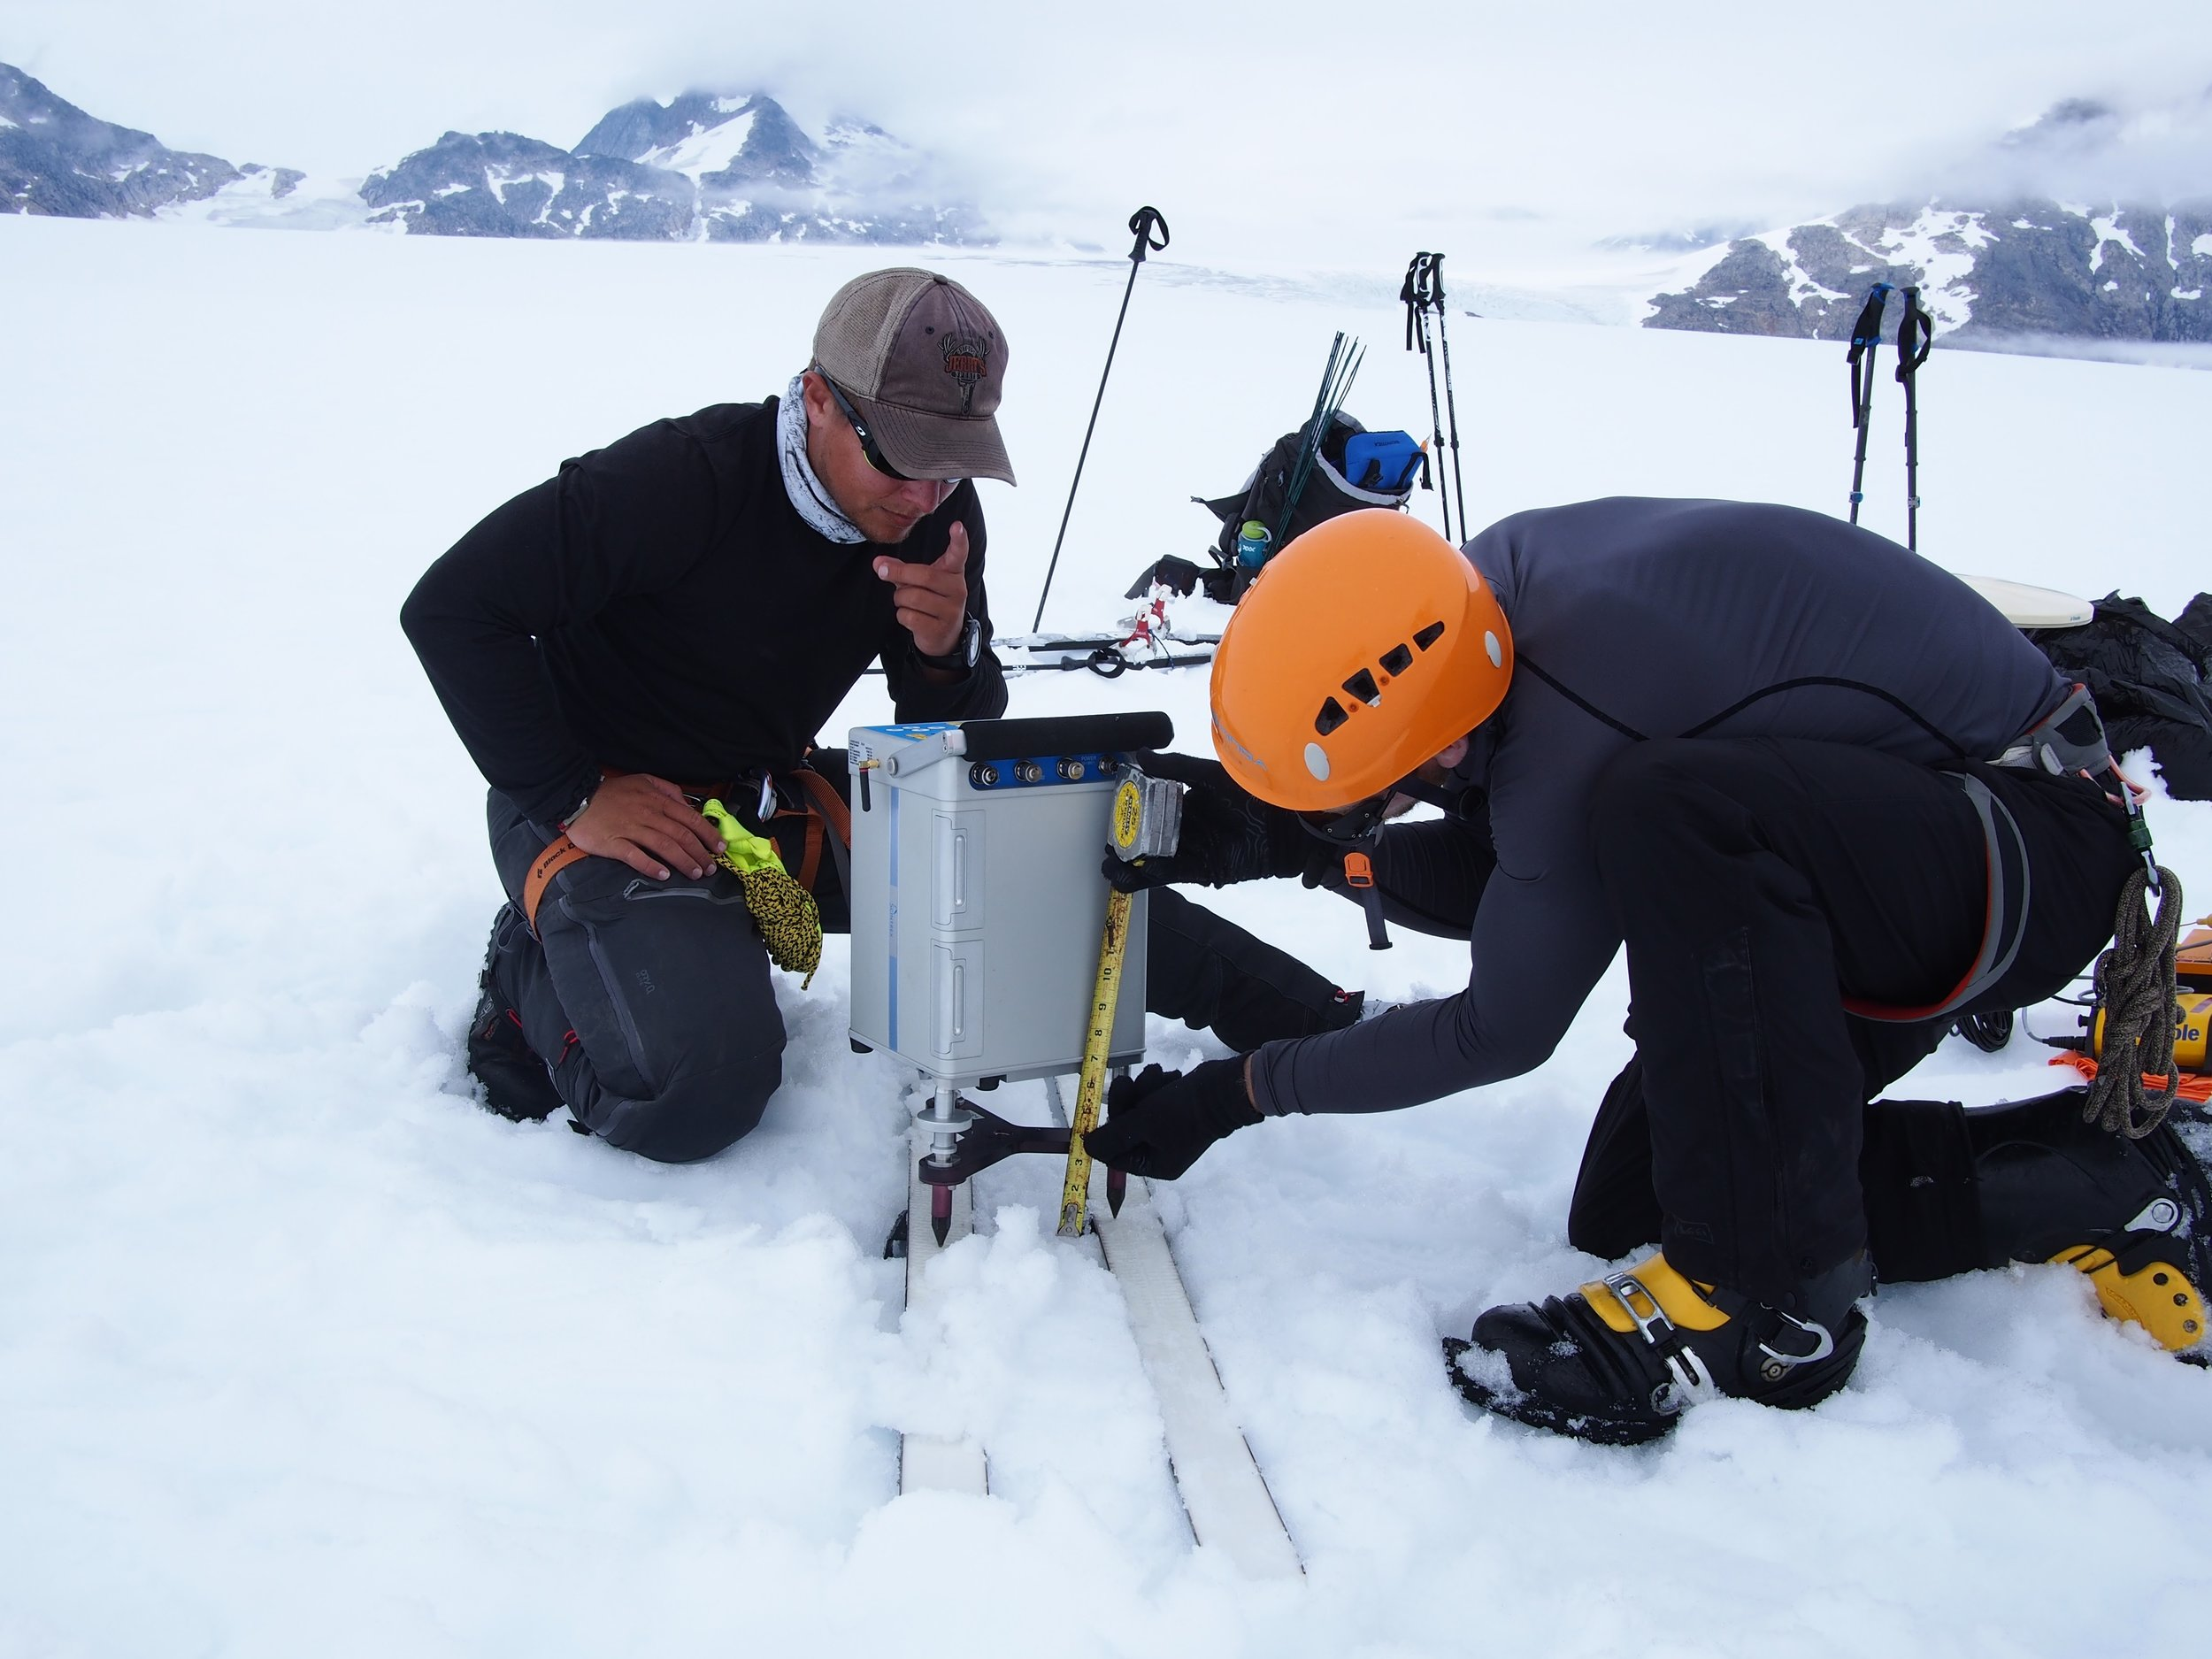 Students DJ Jarrin and Riley Wall set up the delicate gravimeter. The gravimeter measures tiny anomalies in the local gravity, which the students use to deduce information about the bedrock buried beneath almost a mile (1500 m) of ice. Photo credit: DJ Jarrin.